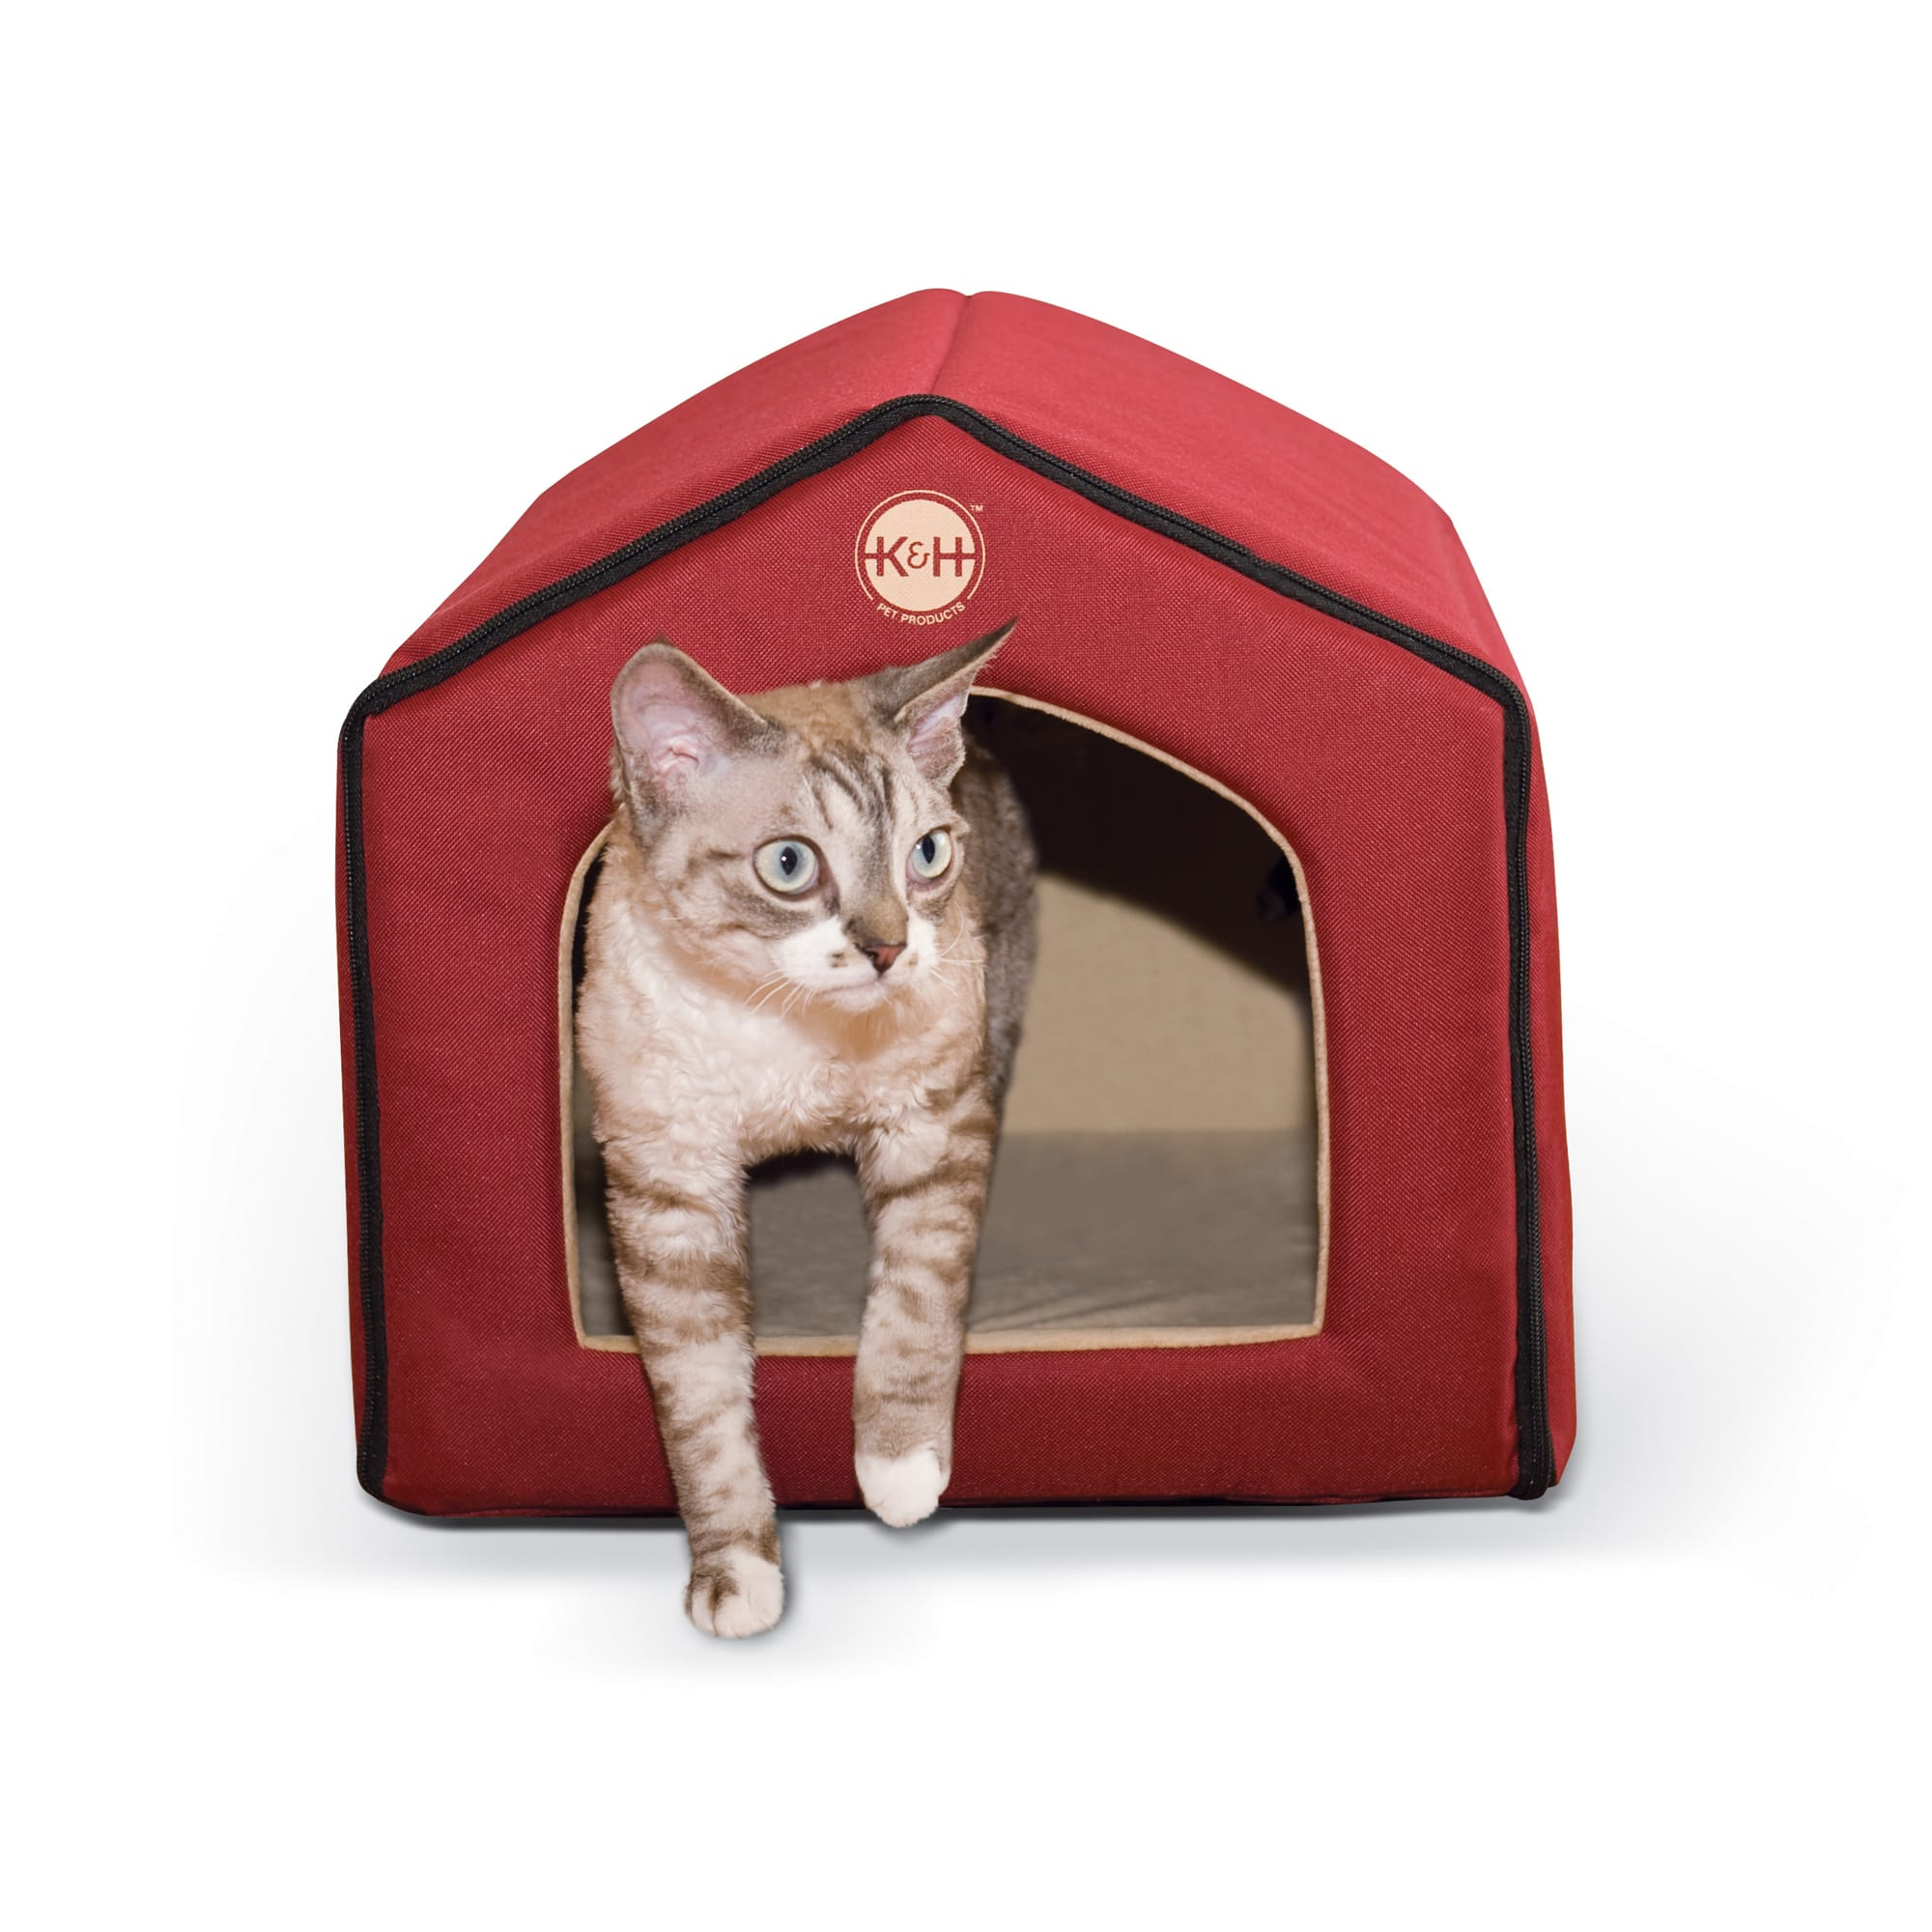 K H Red And Tan Indoor Pet House 16 L X 15 W Petco